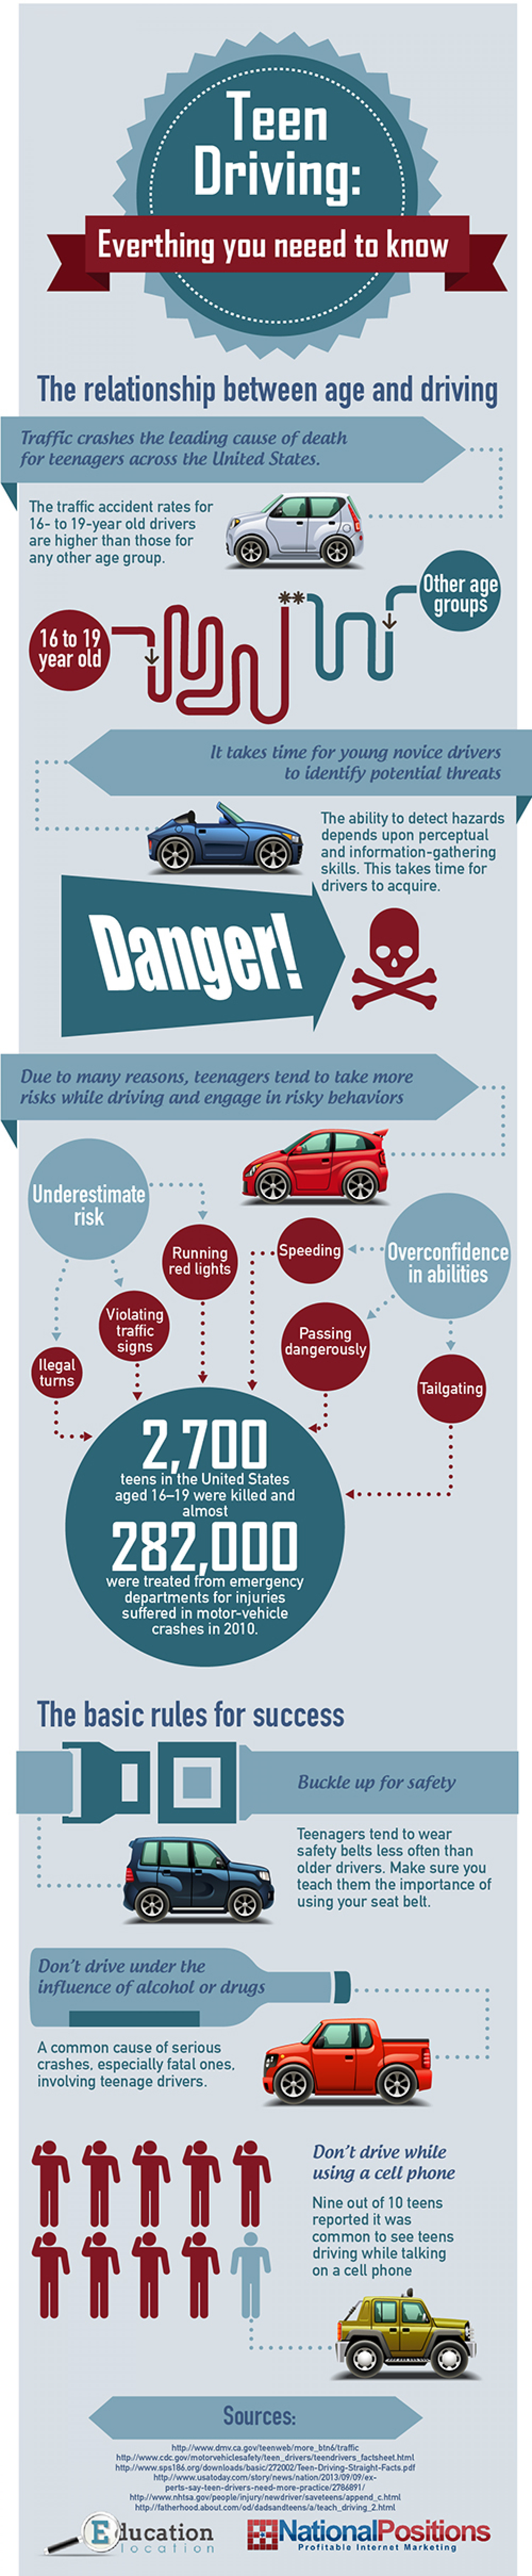 Teen Drivers: Everything You Need To Know Infographic